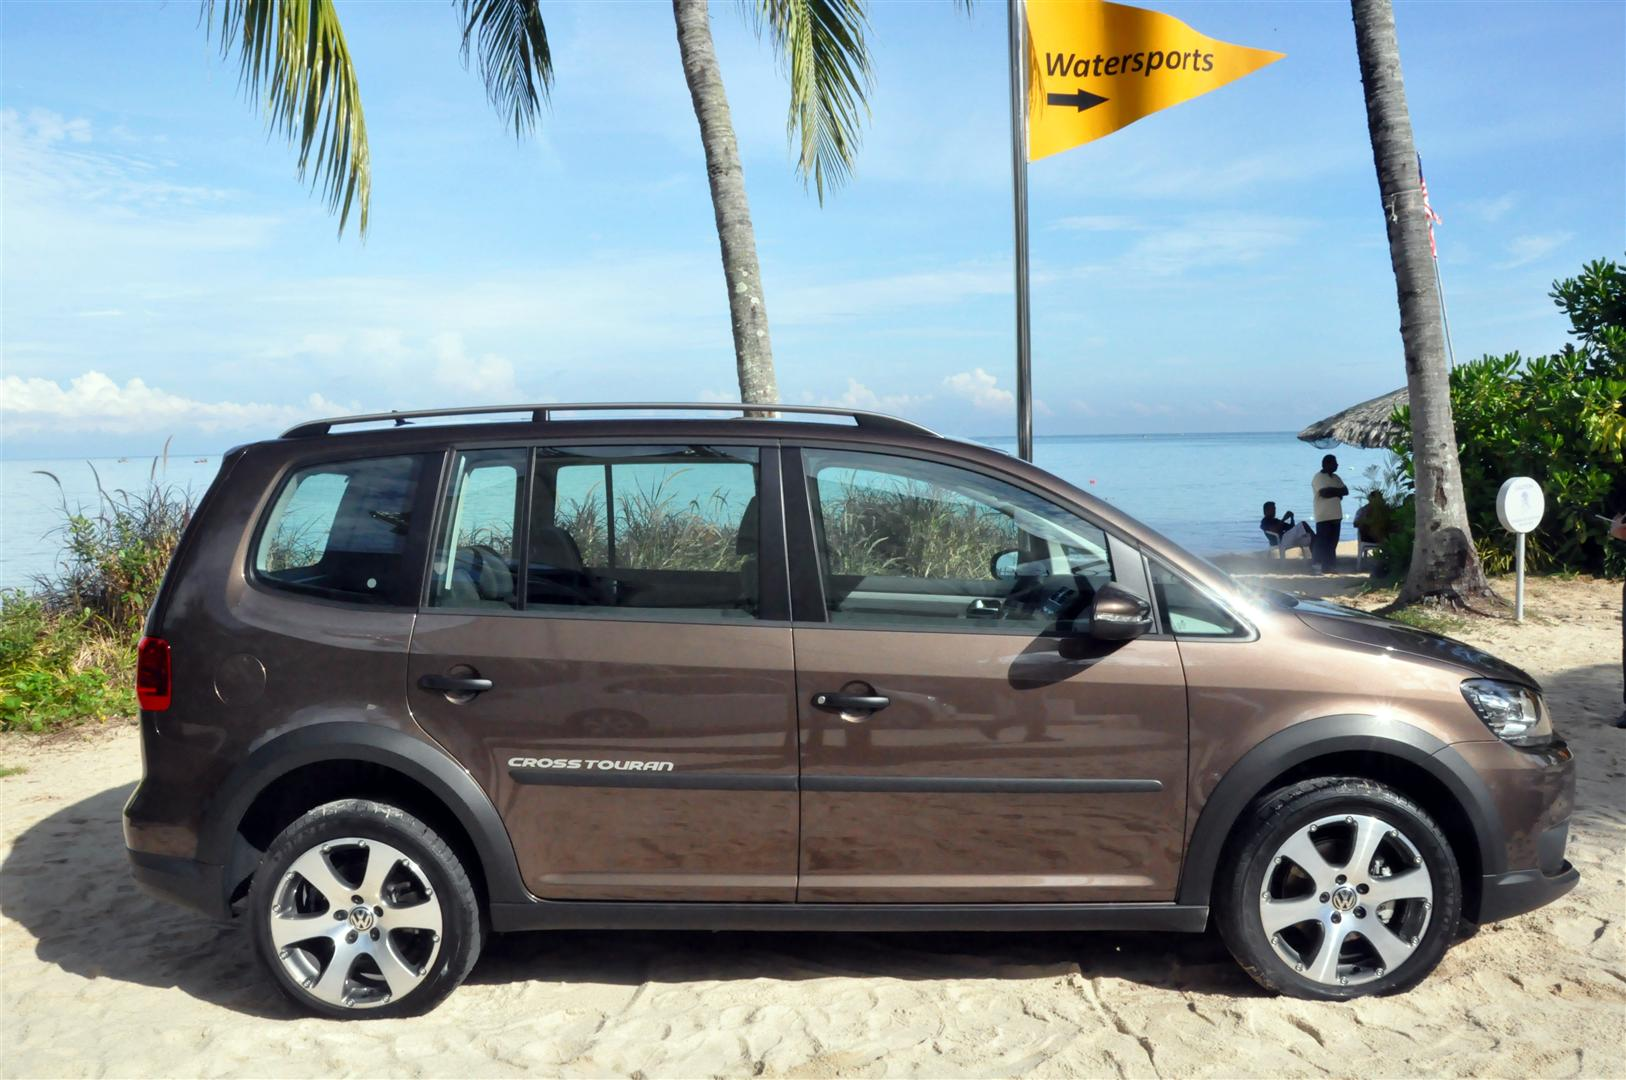 the volkswagen cross touran unconventional performance rm166 888 otr